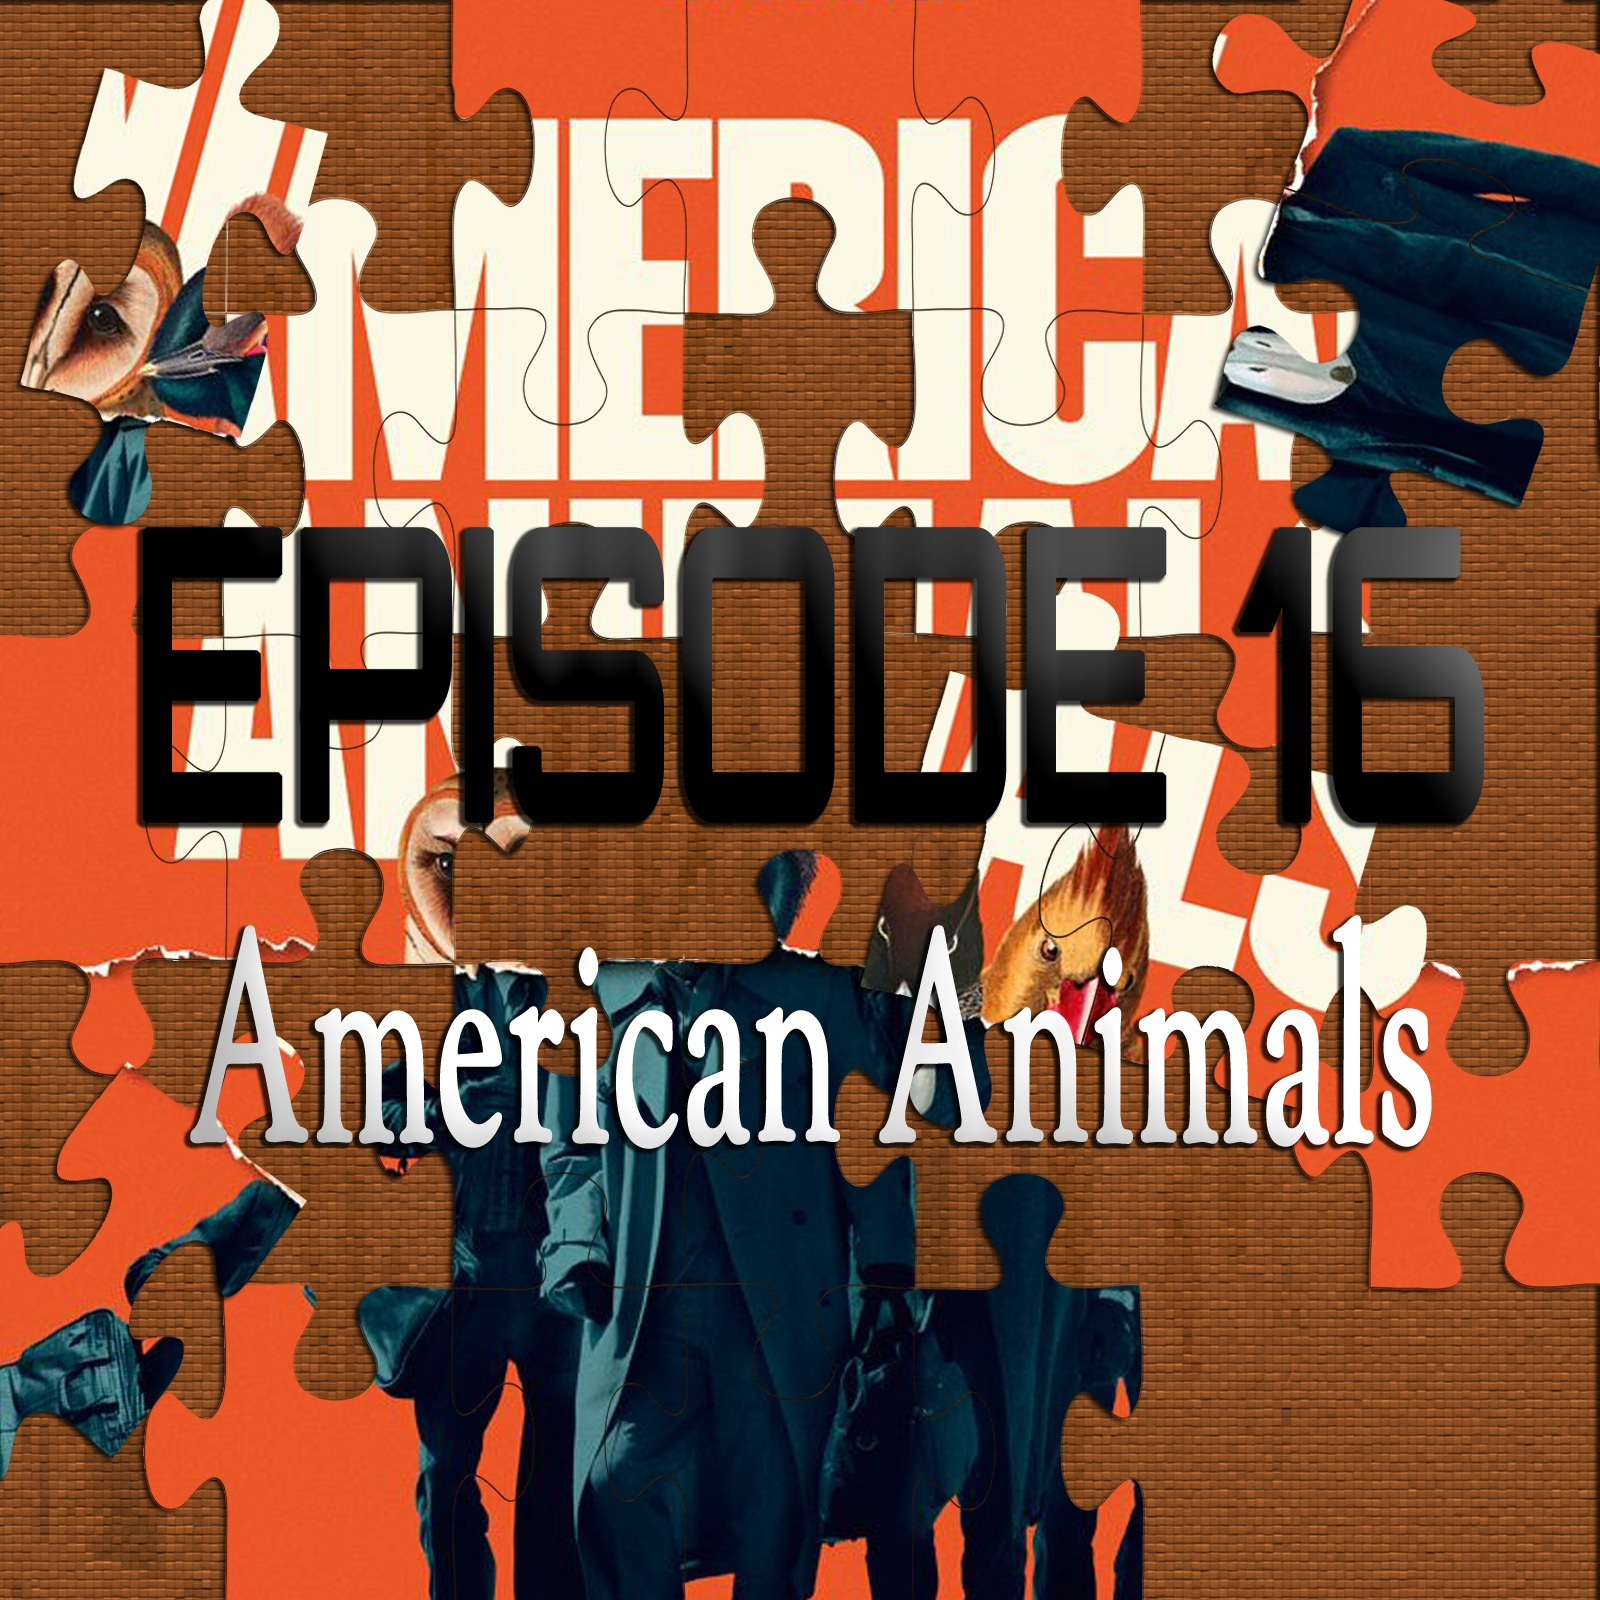 American Animals (Featuring Josh Bell)